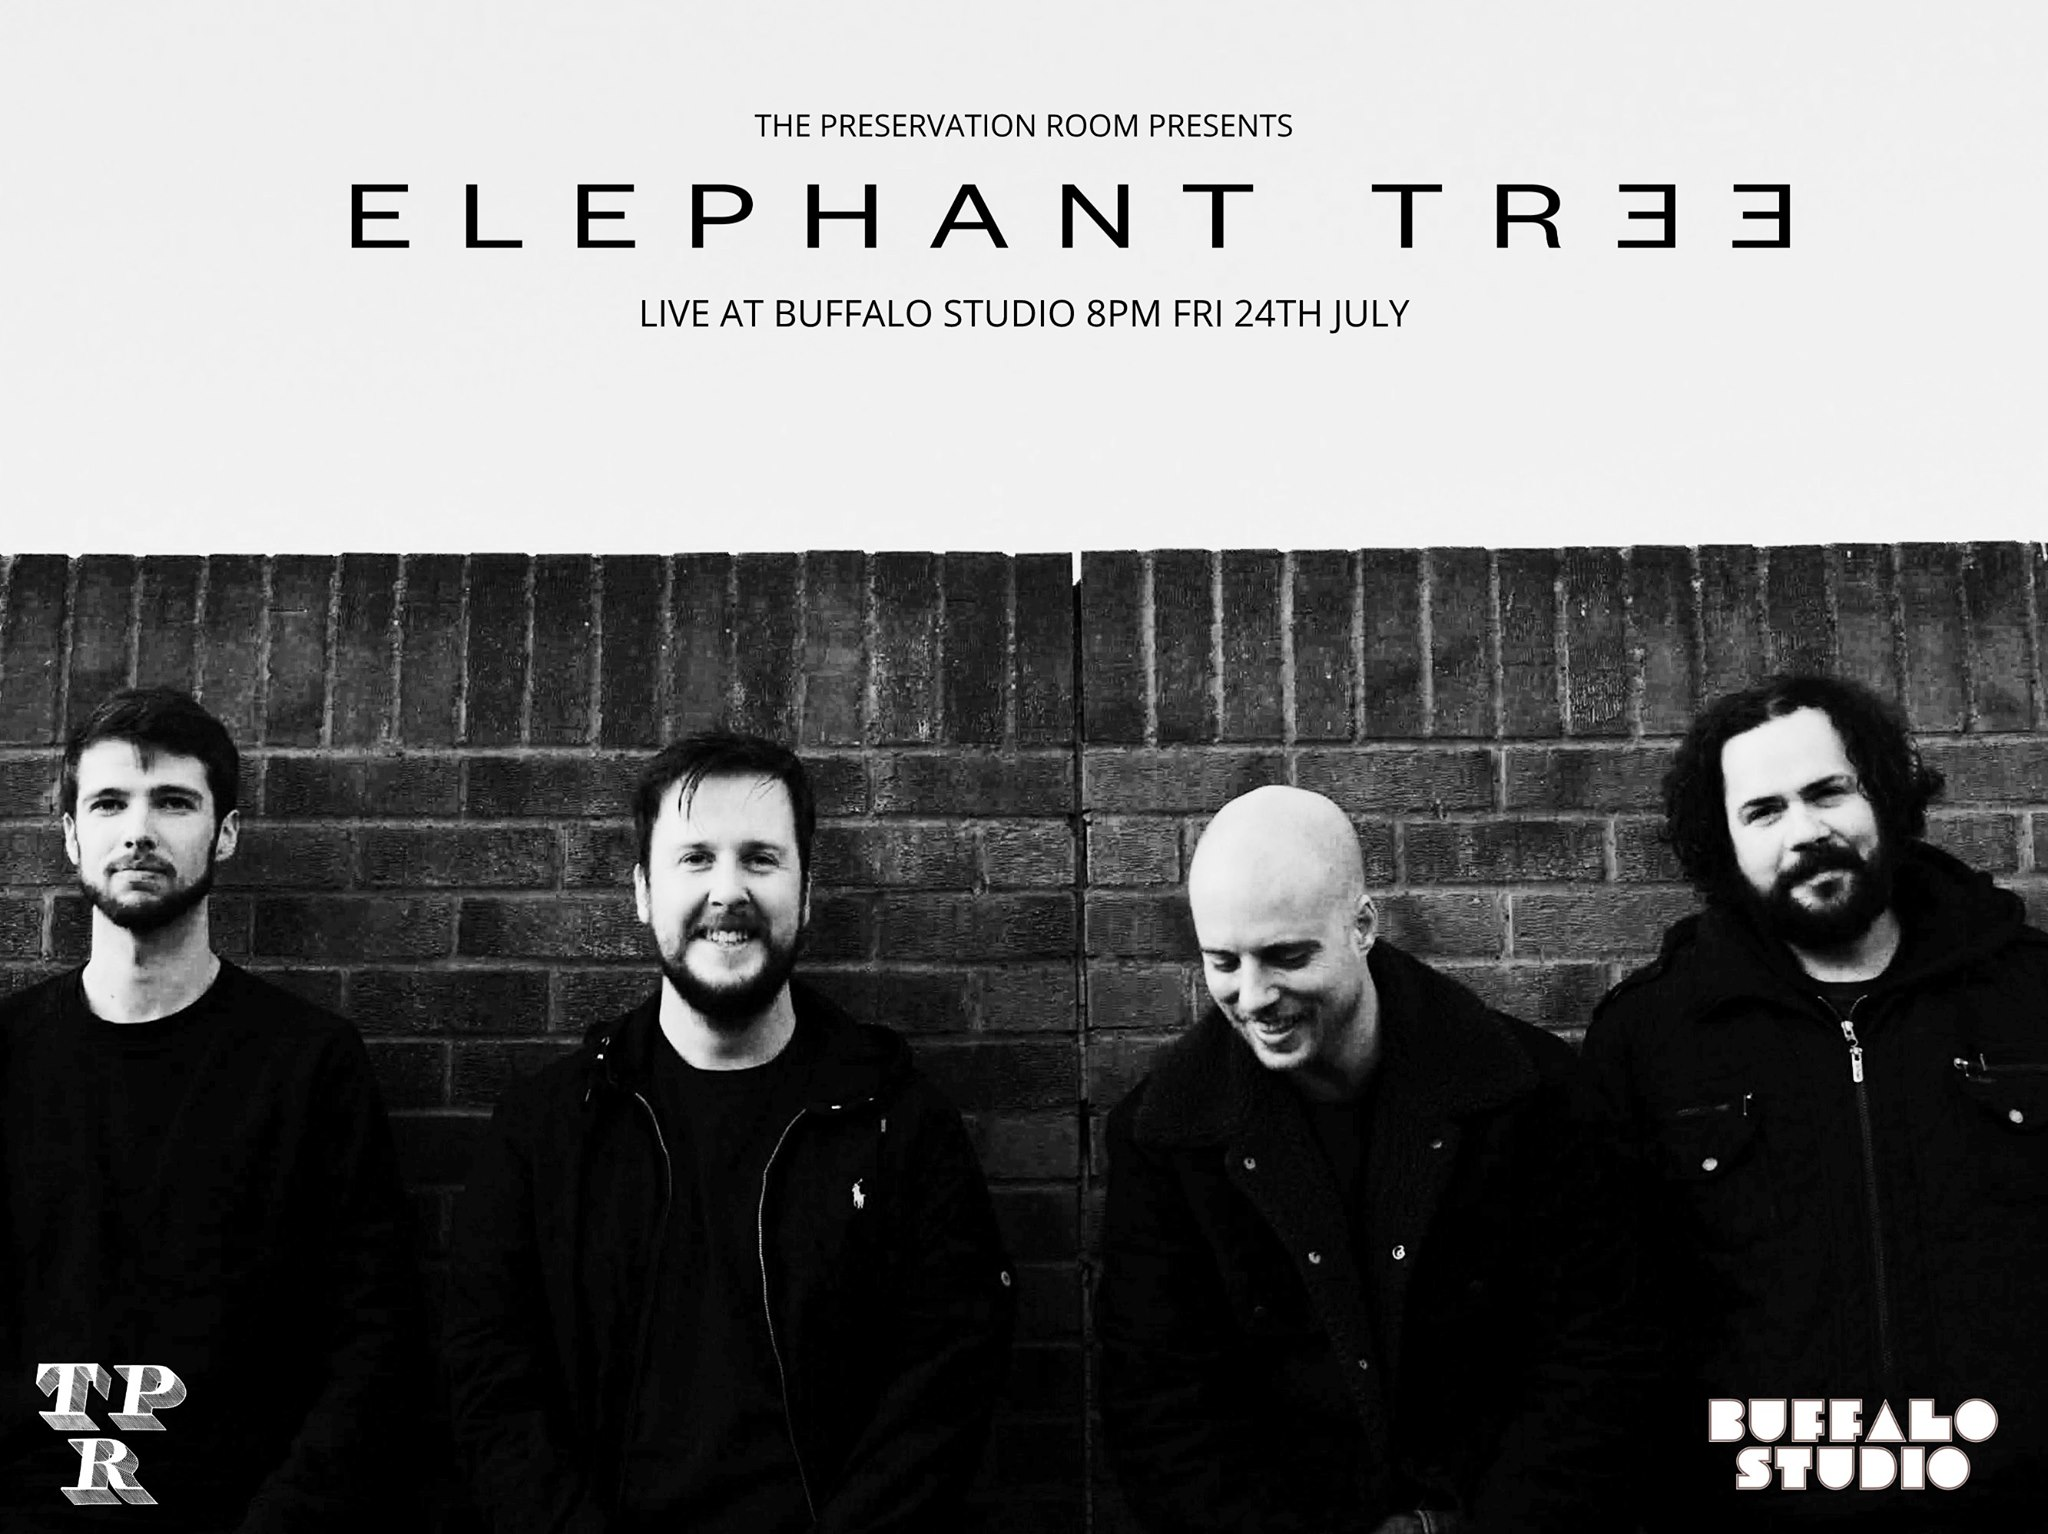 elephant tree buffalo studio